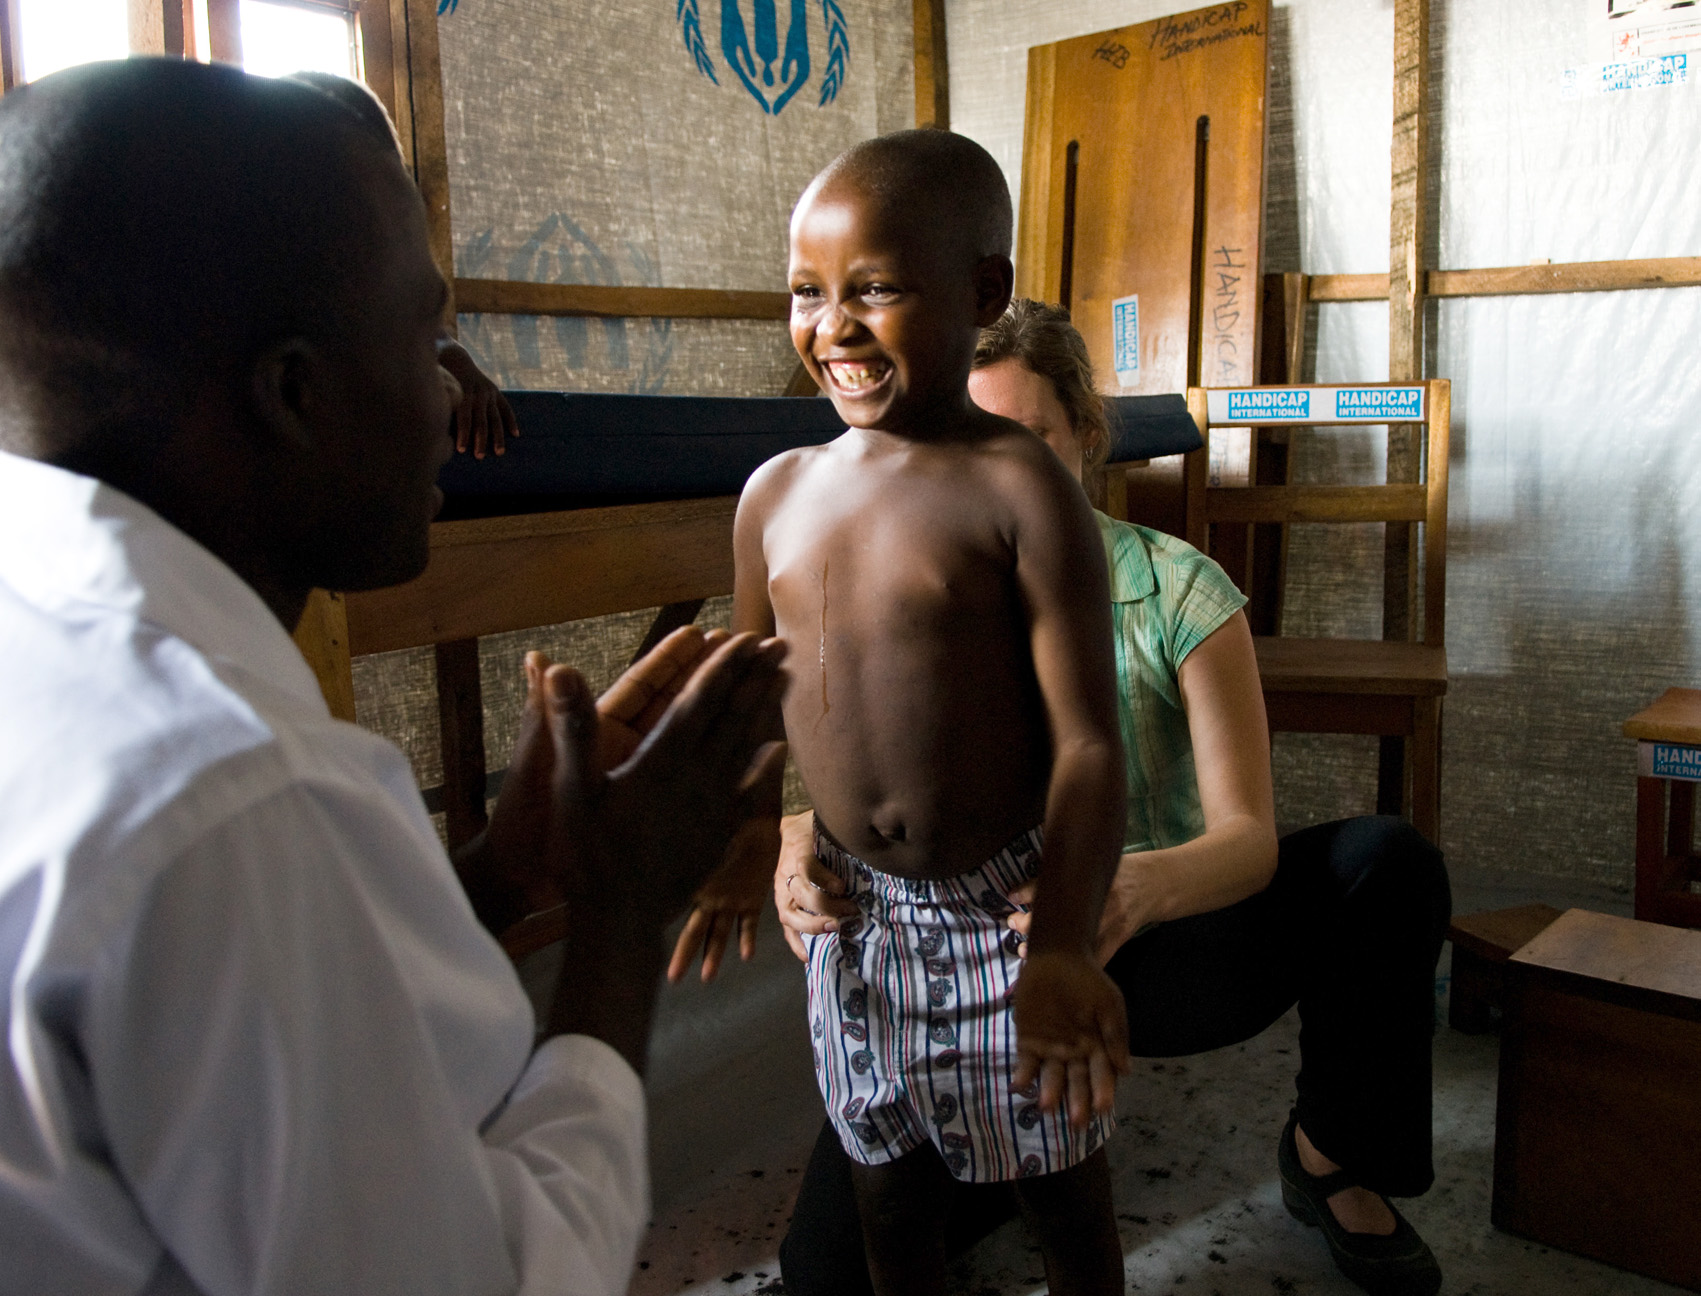 Helena, age 9, reacts joyfully to her therapist, Innocent, while being helped to maintain her balance by Laura Keyser at the Hanicap International IDP field clinic near Goma, DRC. Helena suffers from cerebral palsey and until recently was unable to contro